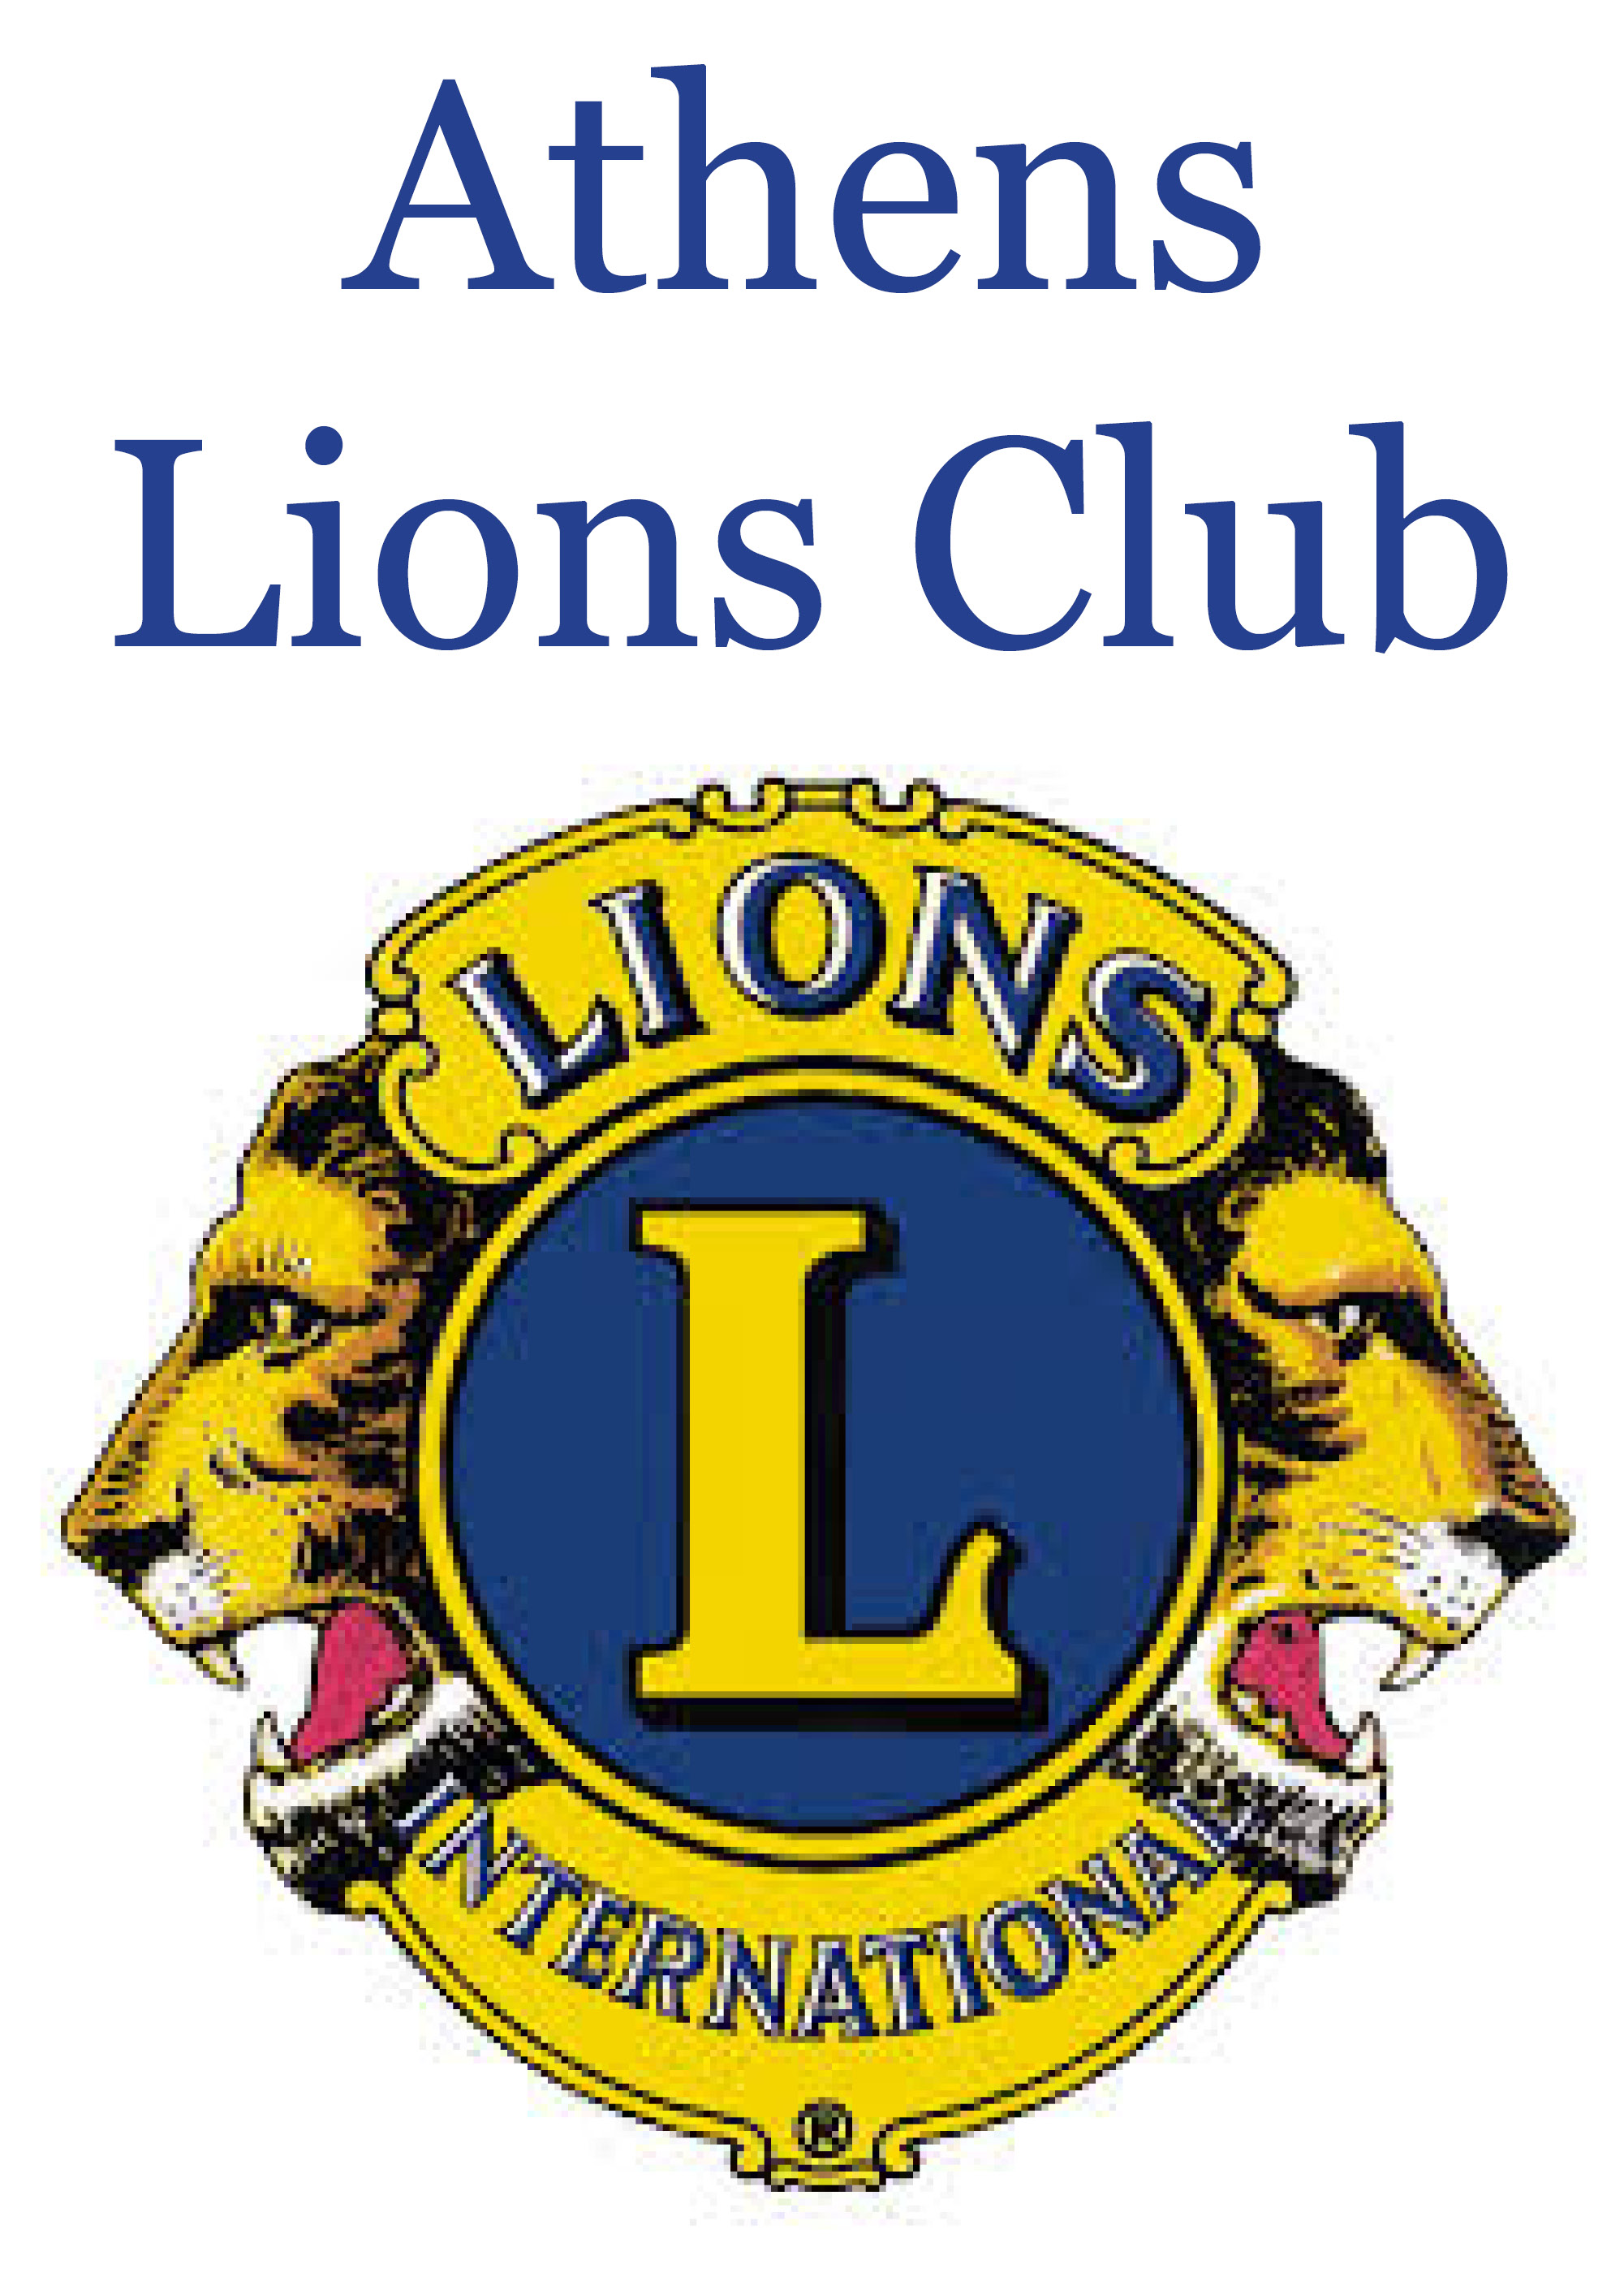 lions club Lions has given me so many unforgettable experiences and amazing friendships over the course of my four years in the club.